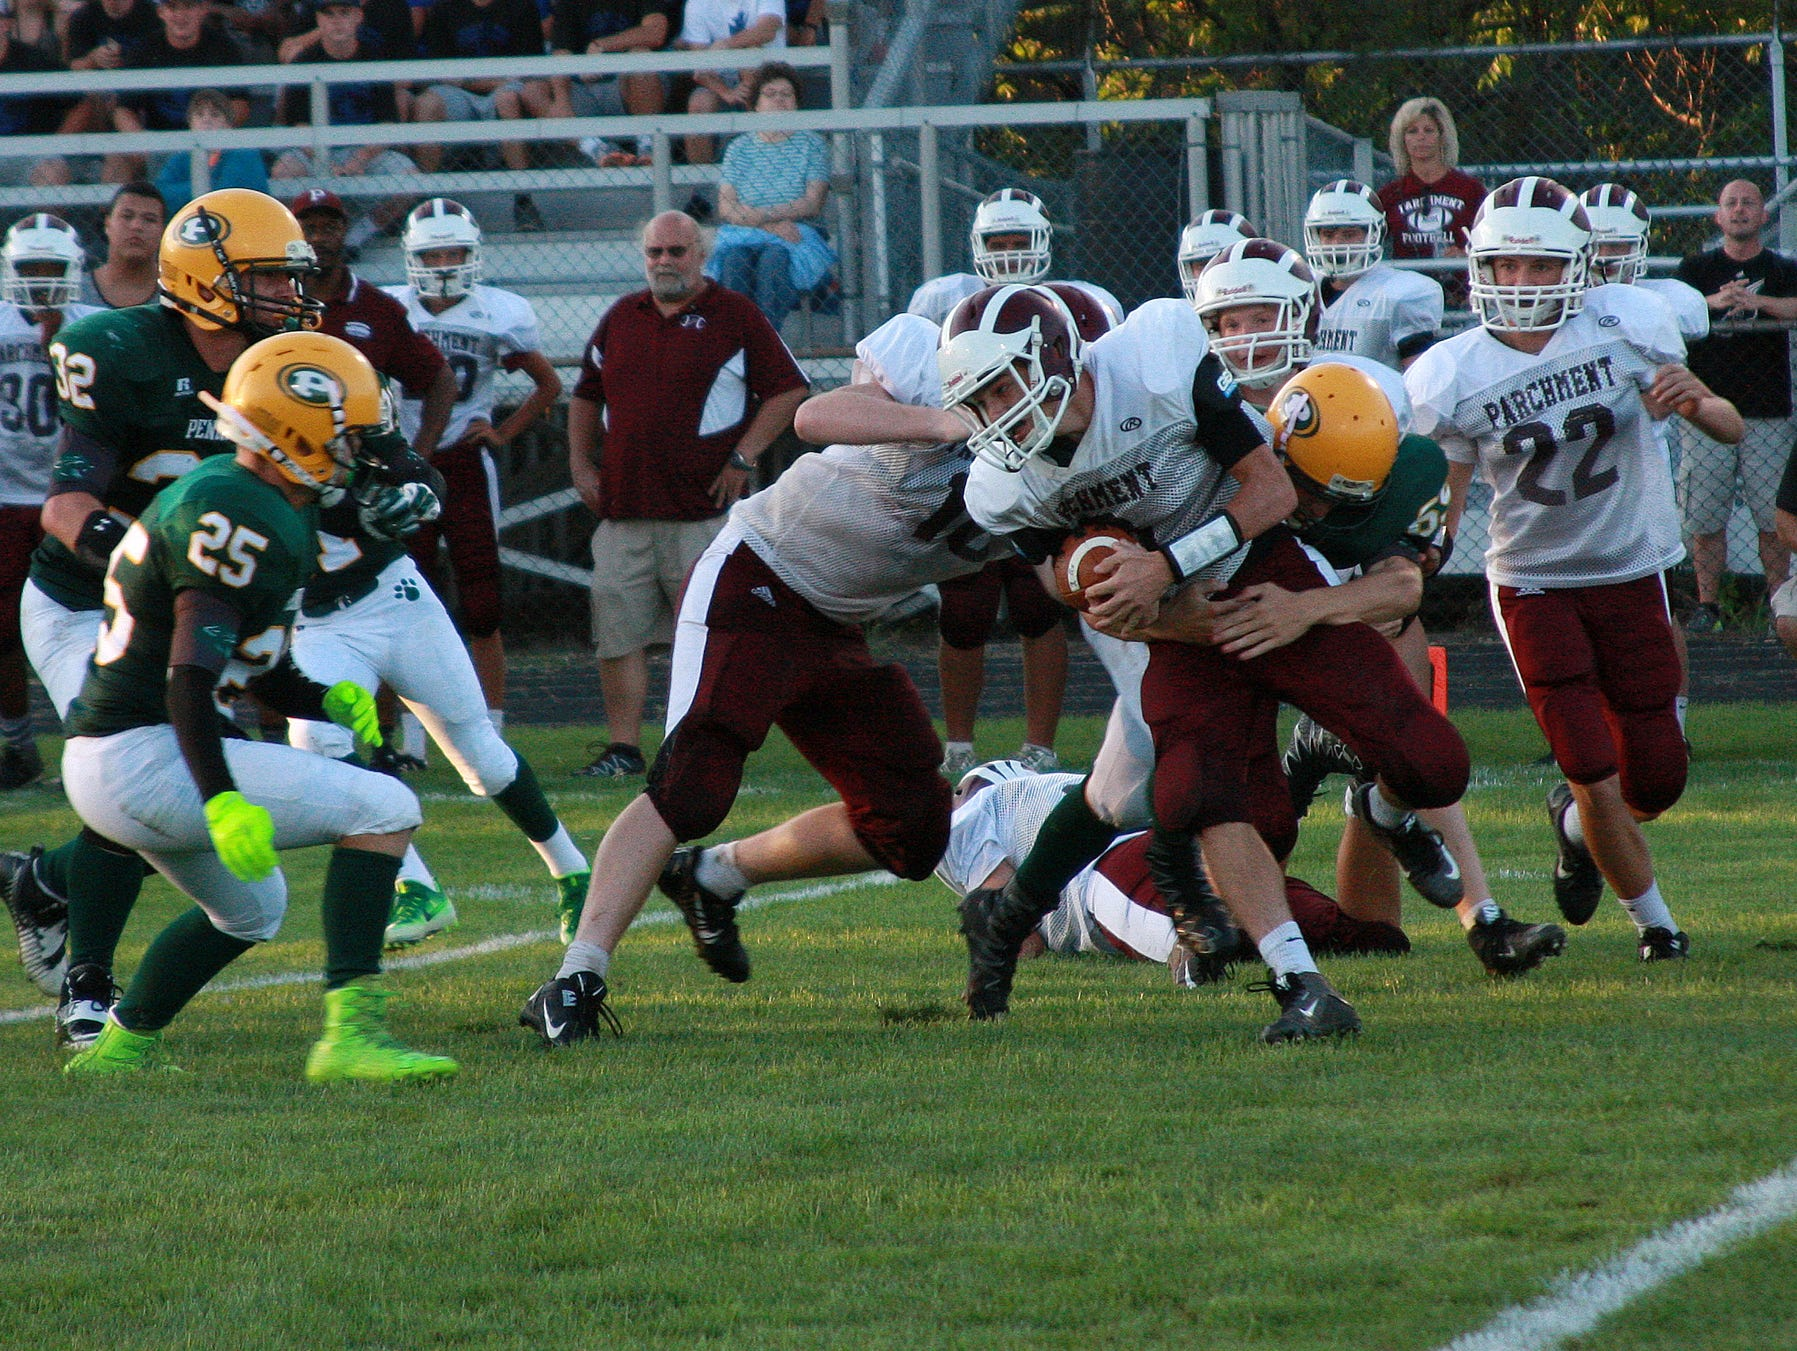 Garrett Stutz of Parchment gets tackled for a loss Thursday night against Pennfield.